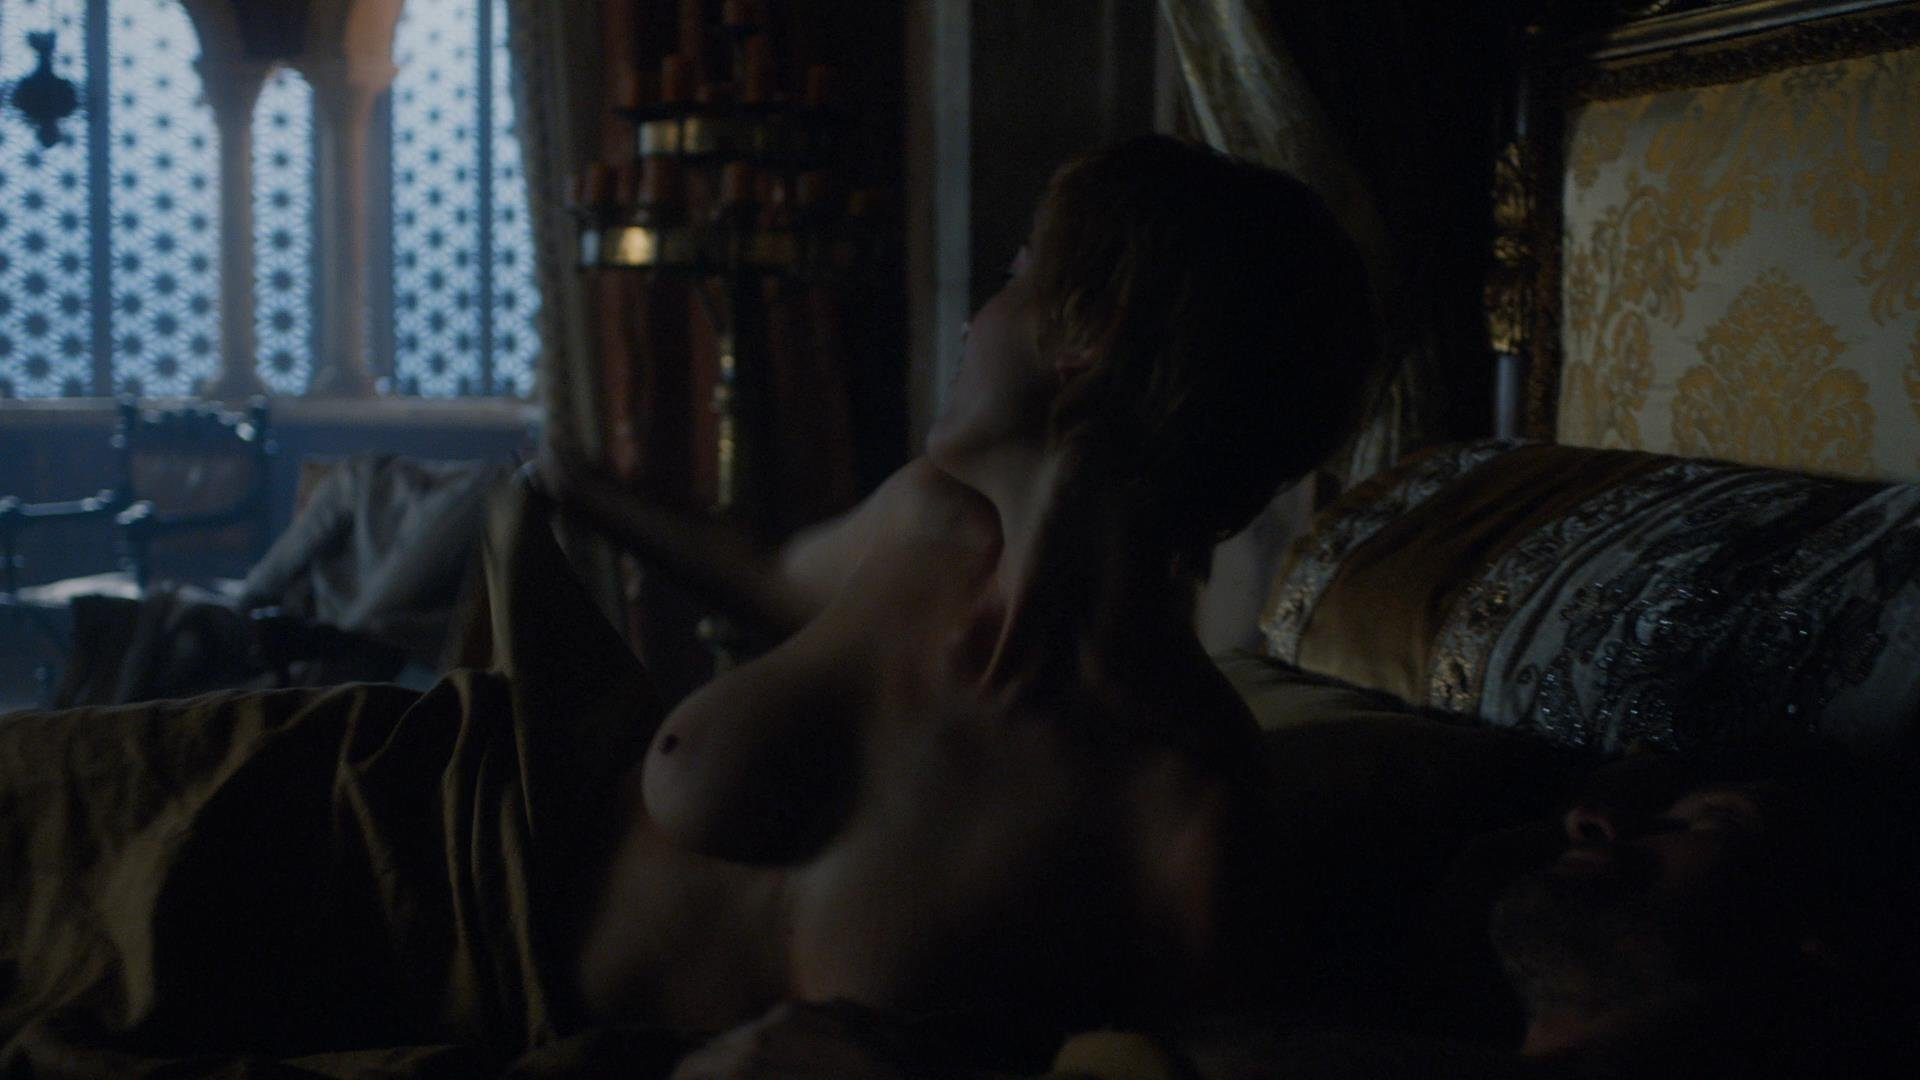 Lena headey naked photos new images